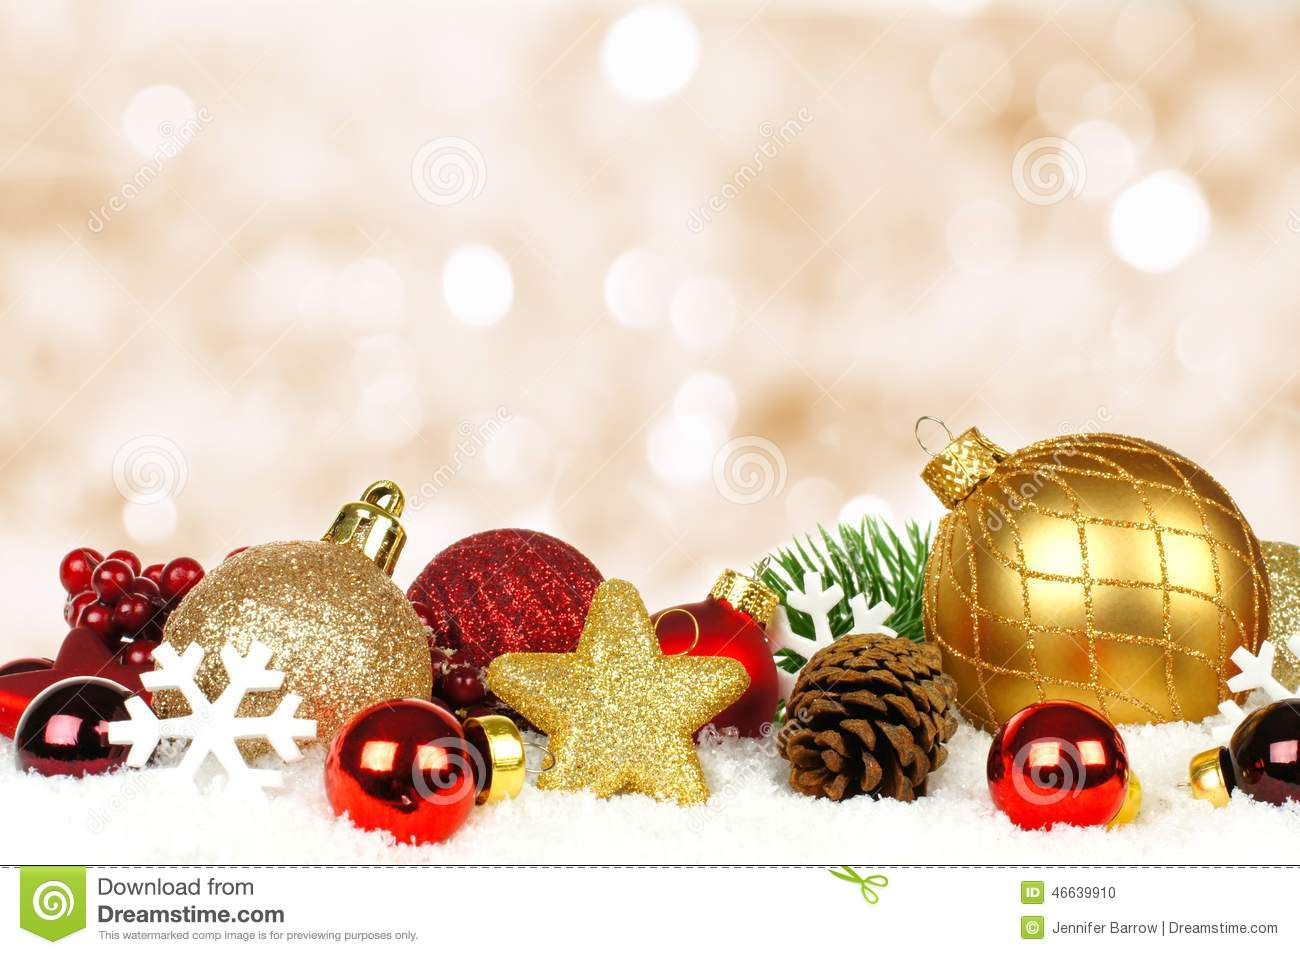 Christmas Ornaments Background.Christmas Ornaments With Twinkling Background Stock Photo